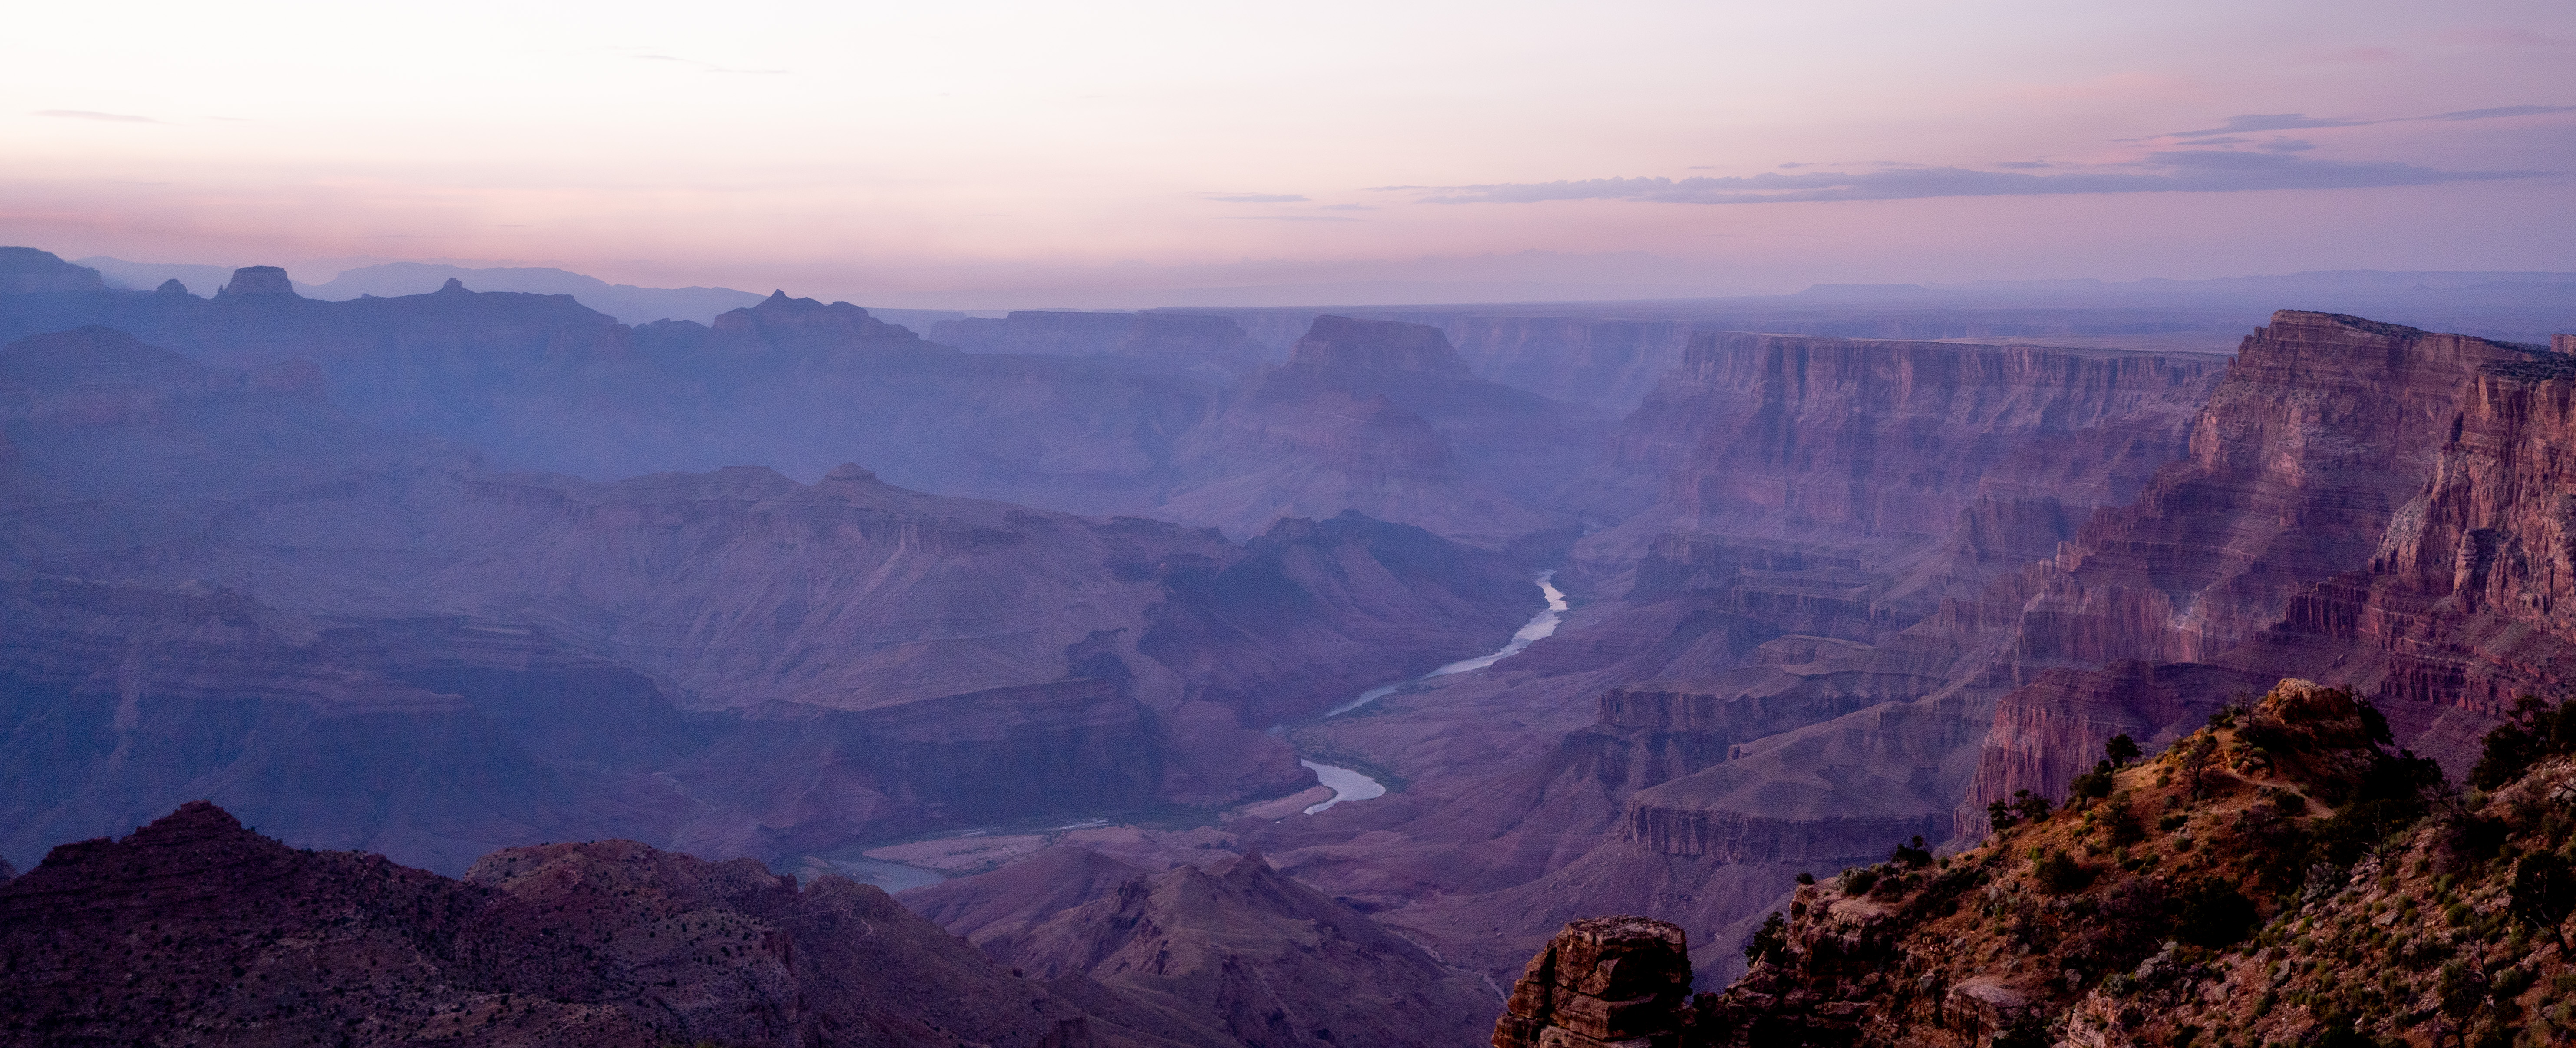 grand canyon national park fee free day hero image